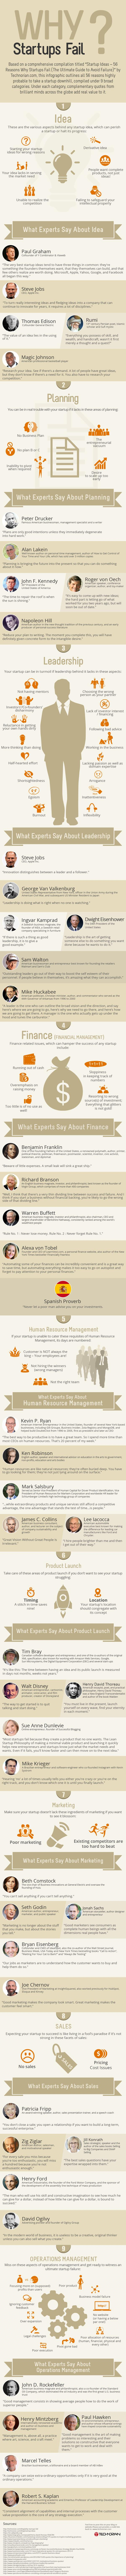 http://technorian.com/blog/why-startups-fail-infographic - by Deluxe Elite Info Solutions Pvt Ltd, Mumbai